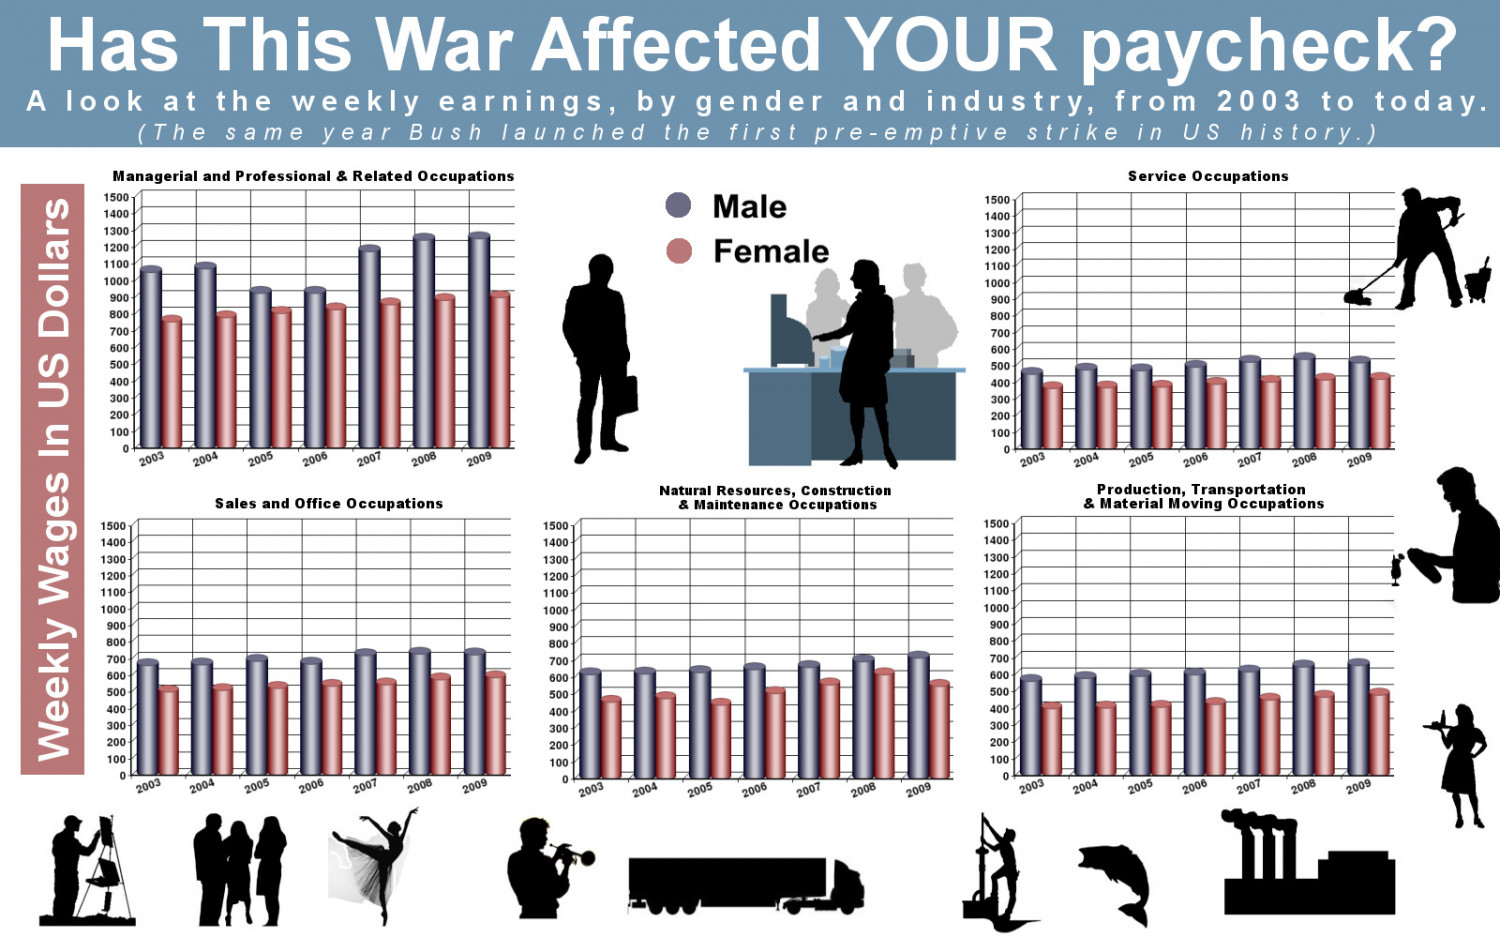 Has This War Affected Your Paycheck? Infographic